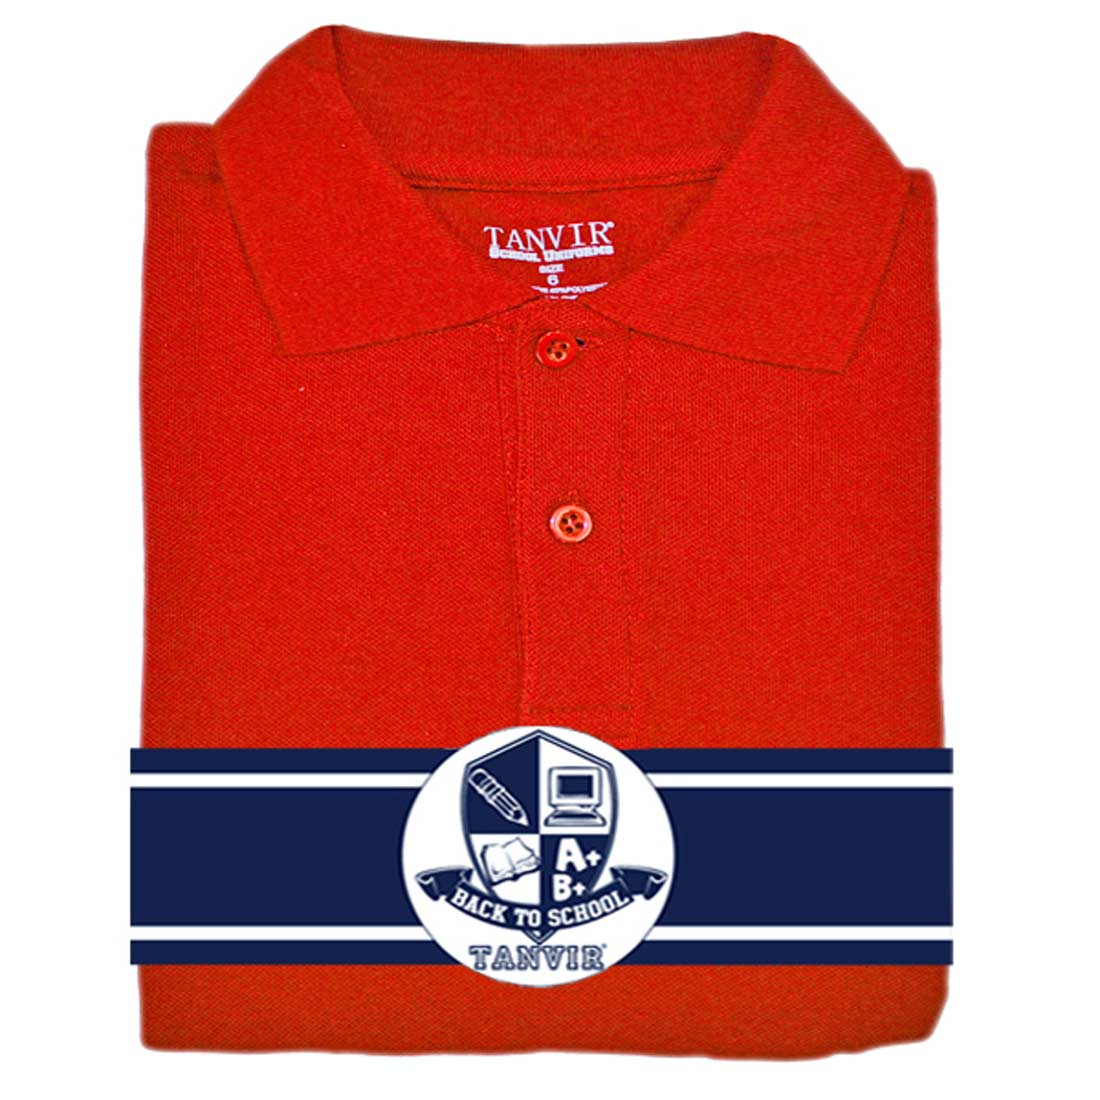 Girls Picot Polo Red Tanvir 2-4